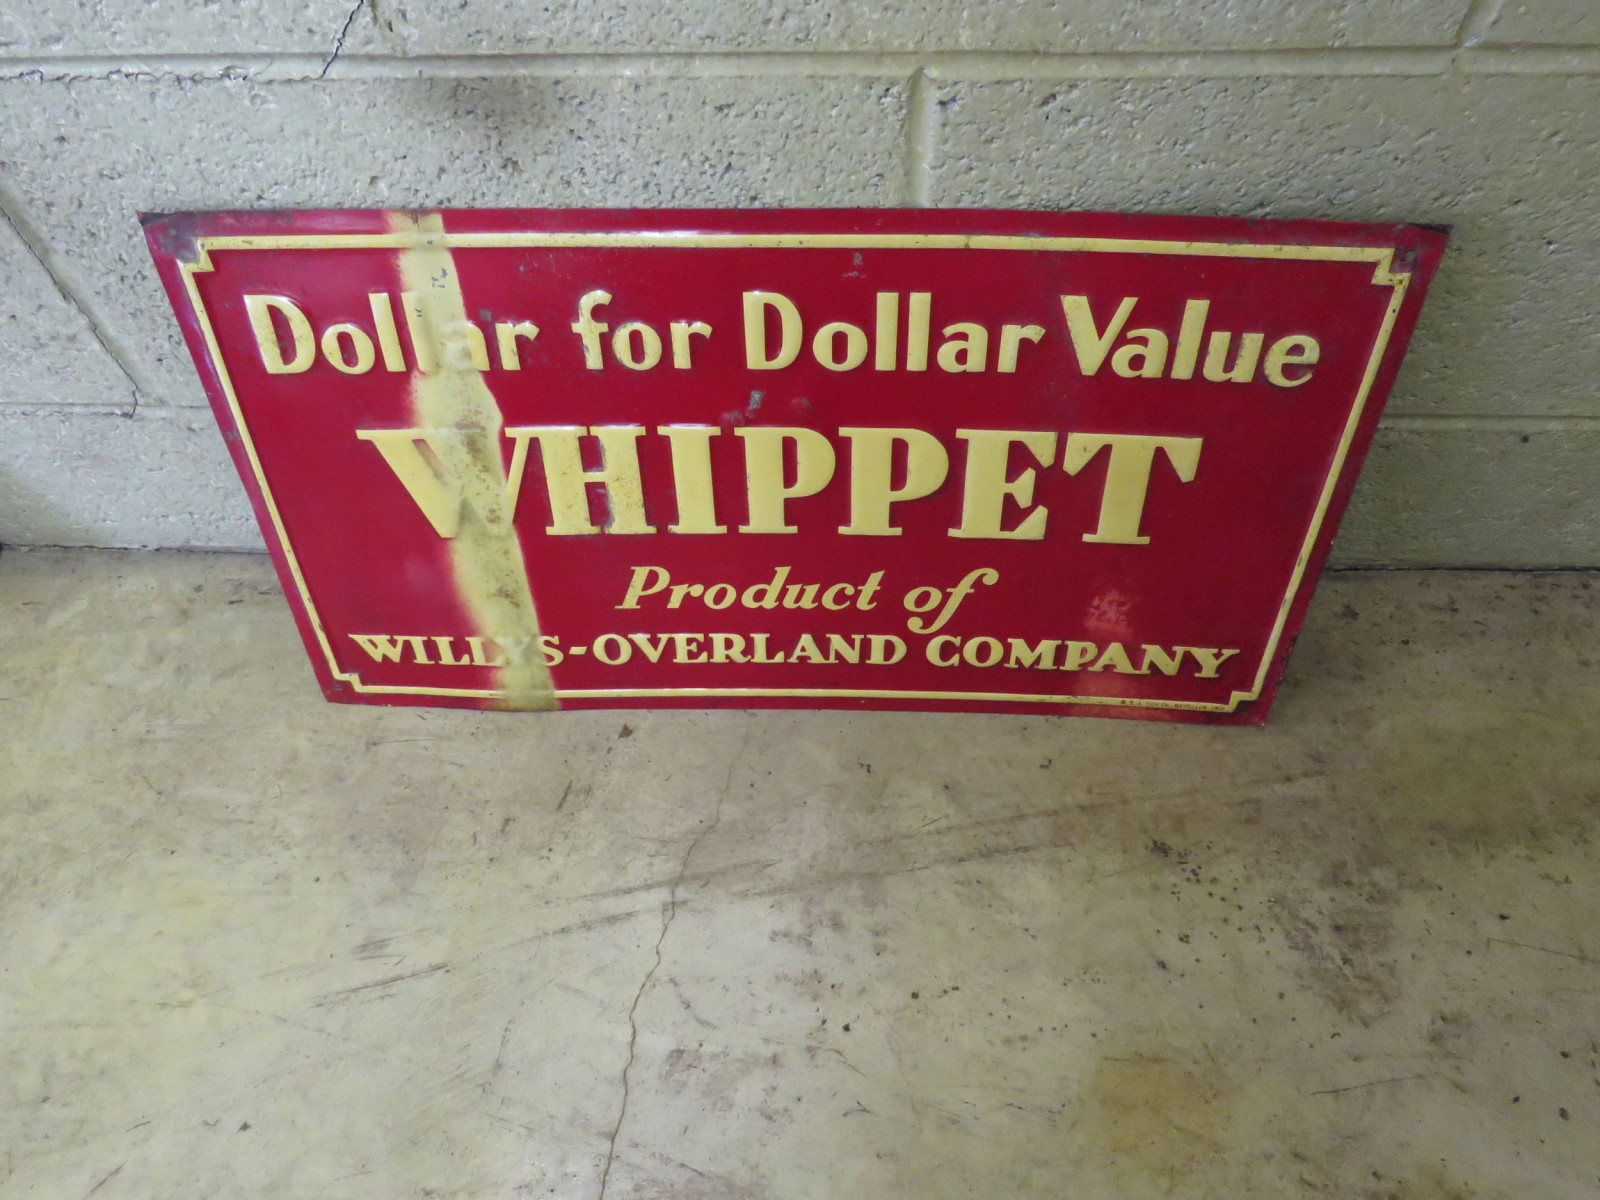 Whippett Painted Tin Sign - Image 1